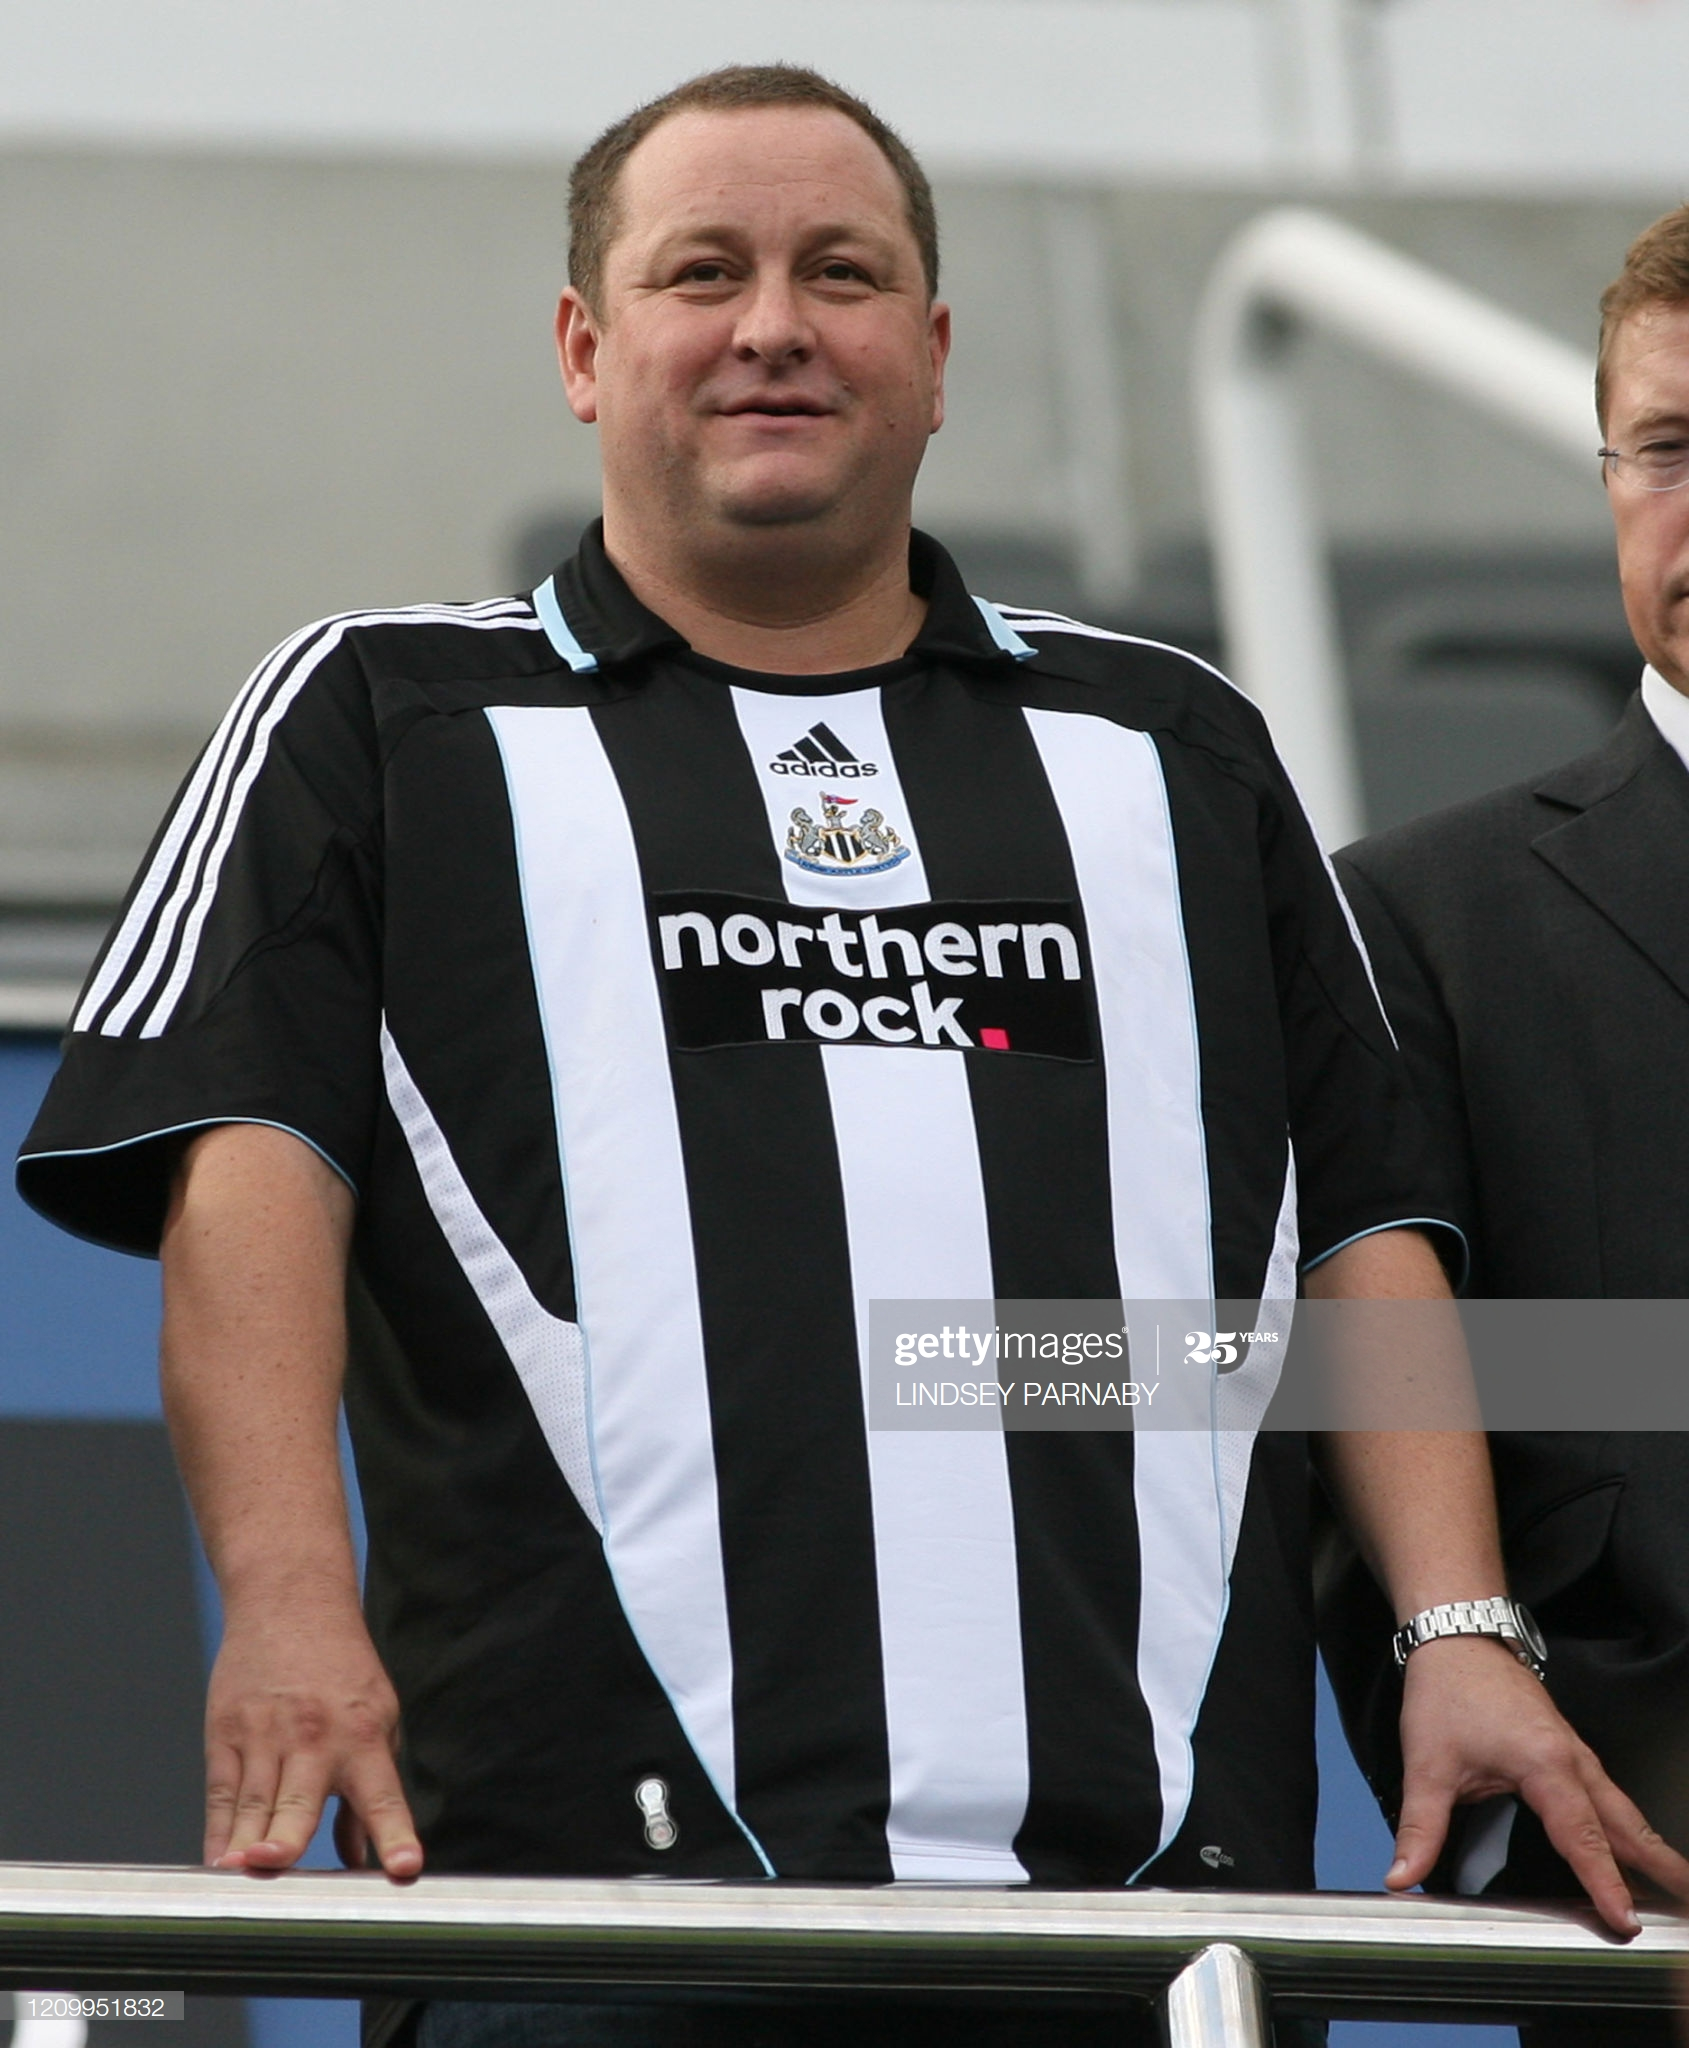 Newcastle owner Mike Ashley becomes impatient over new owner takeover